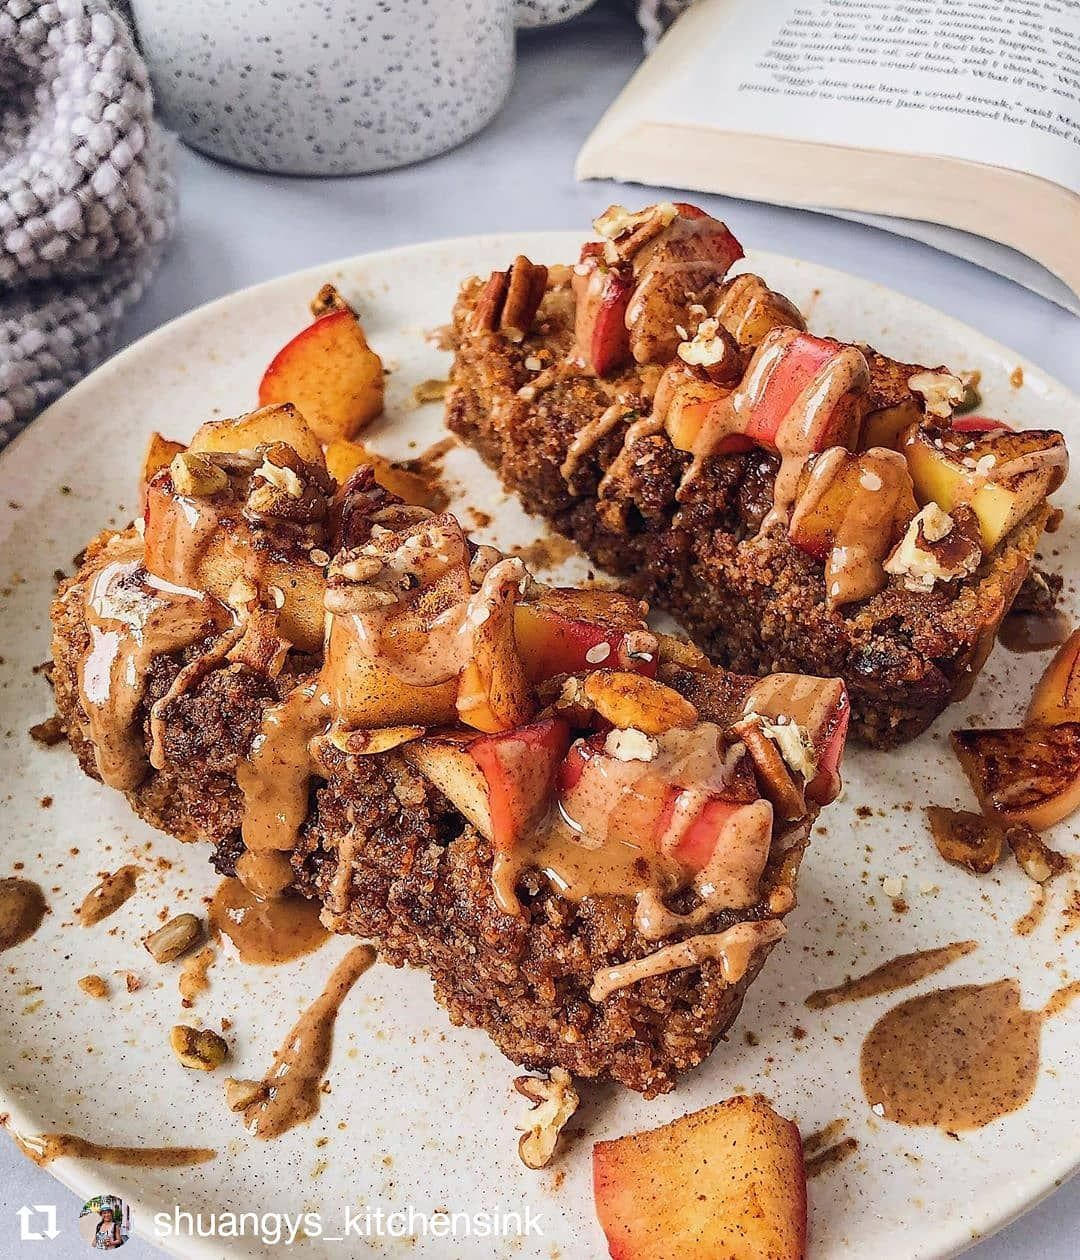 Apple Bread topped with warm spiced apples 🍎 and drizzly nut butta!!: . - Apple Sauce 🍎 - Eggs - Maple Syrup 🍁 - Almond Butter - Almond Flour - Tapioca Flour - Apple 🍏 Pie Spice . .Follow👉@thetabletalkfood